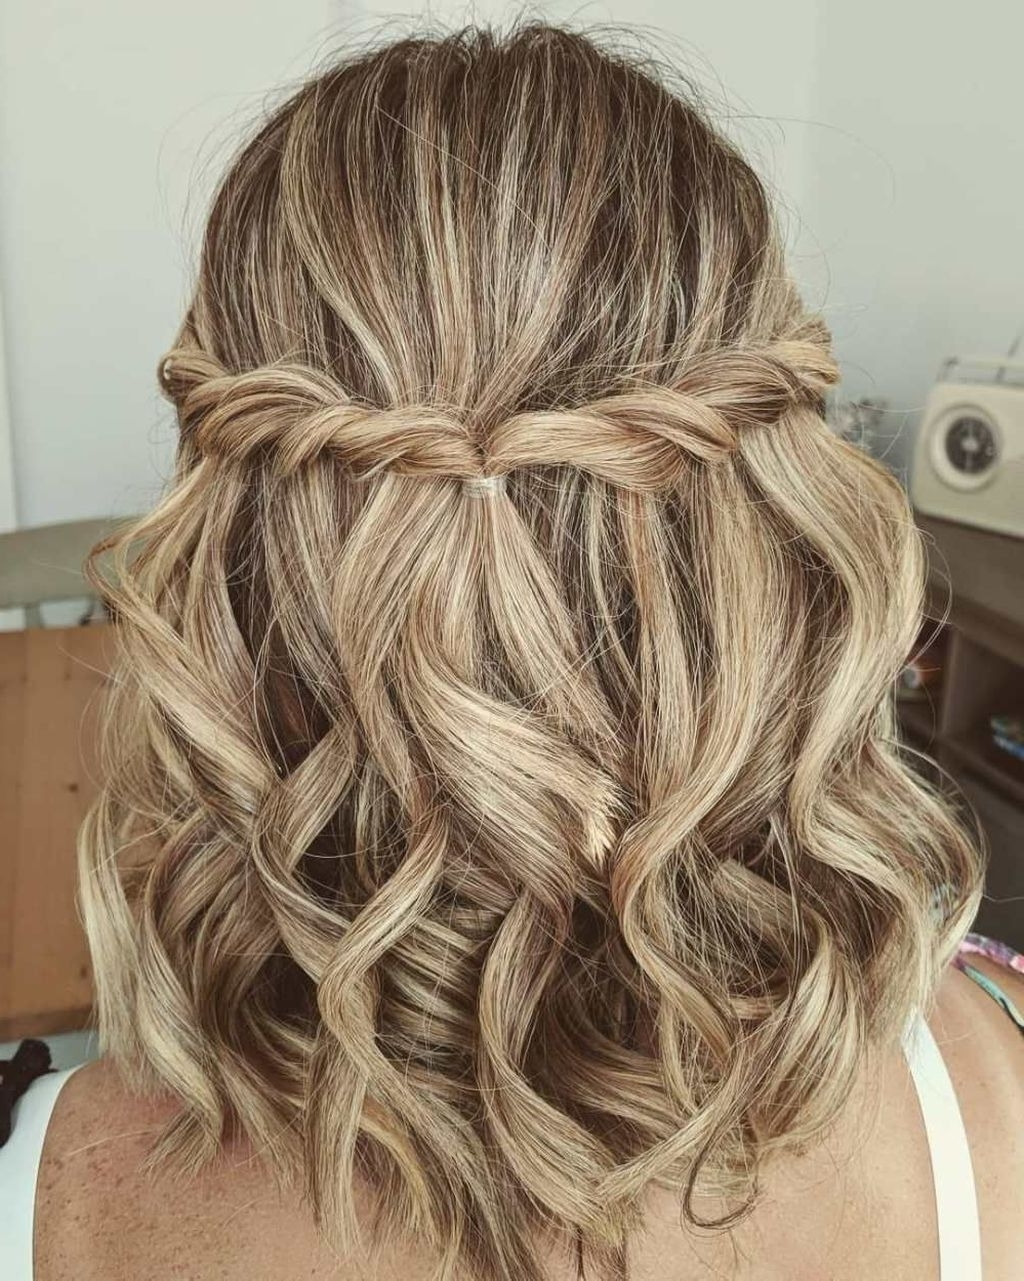 50 Newest Short Formal Hairstyles Ideas For Women | Updos Hairstyles For Graduation For Medium Length Hair